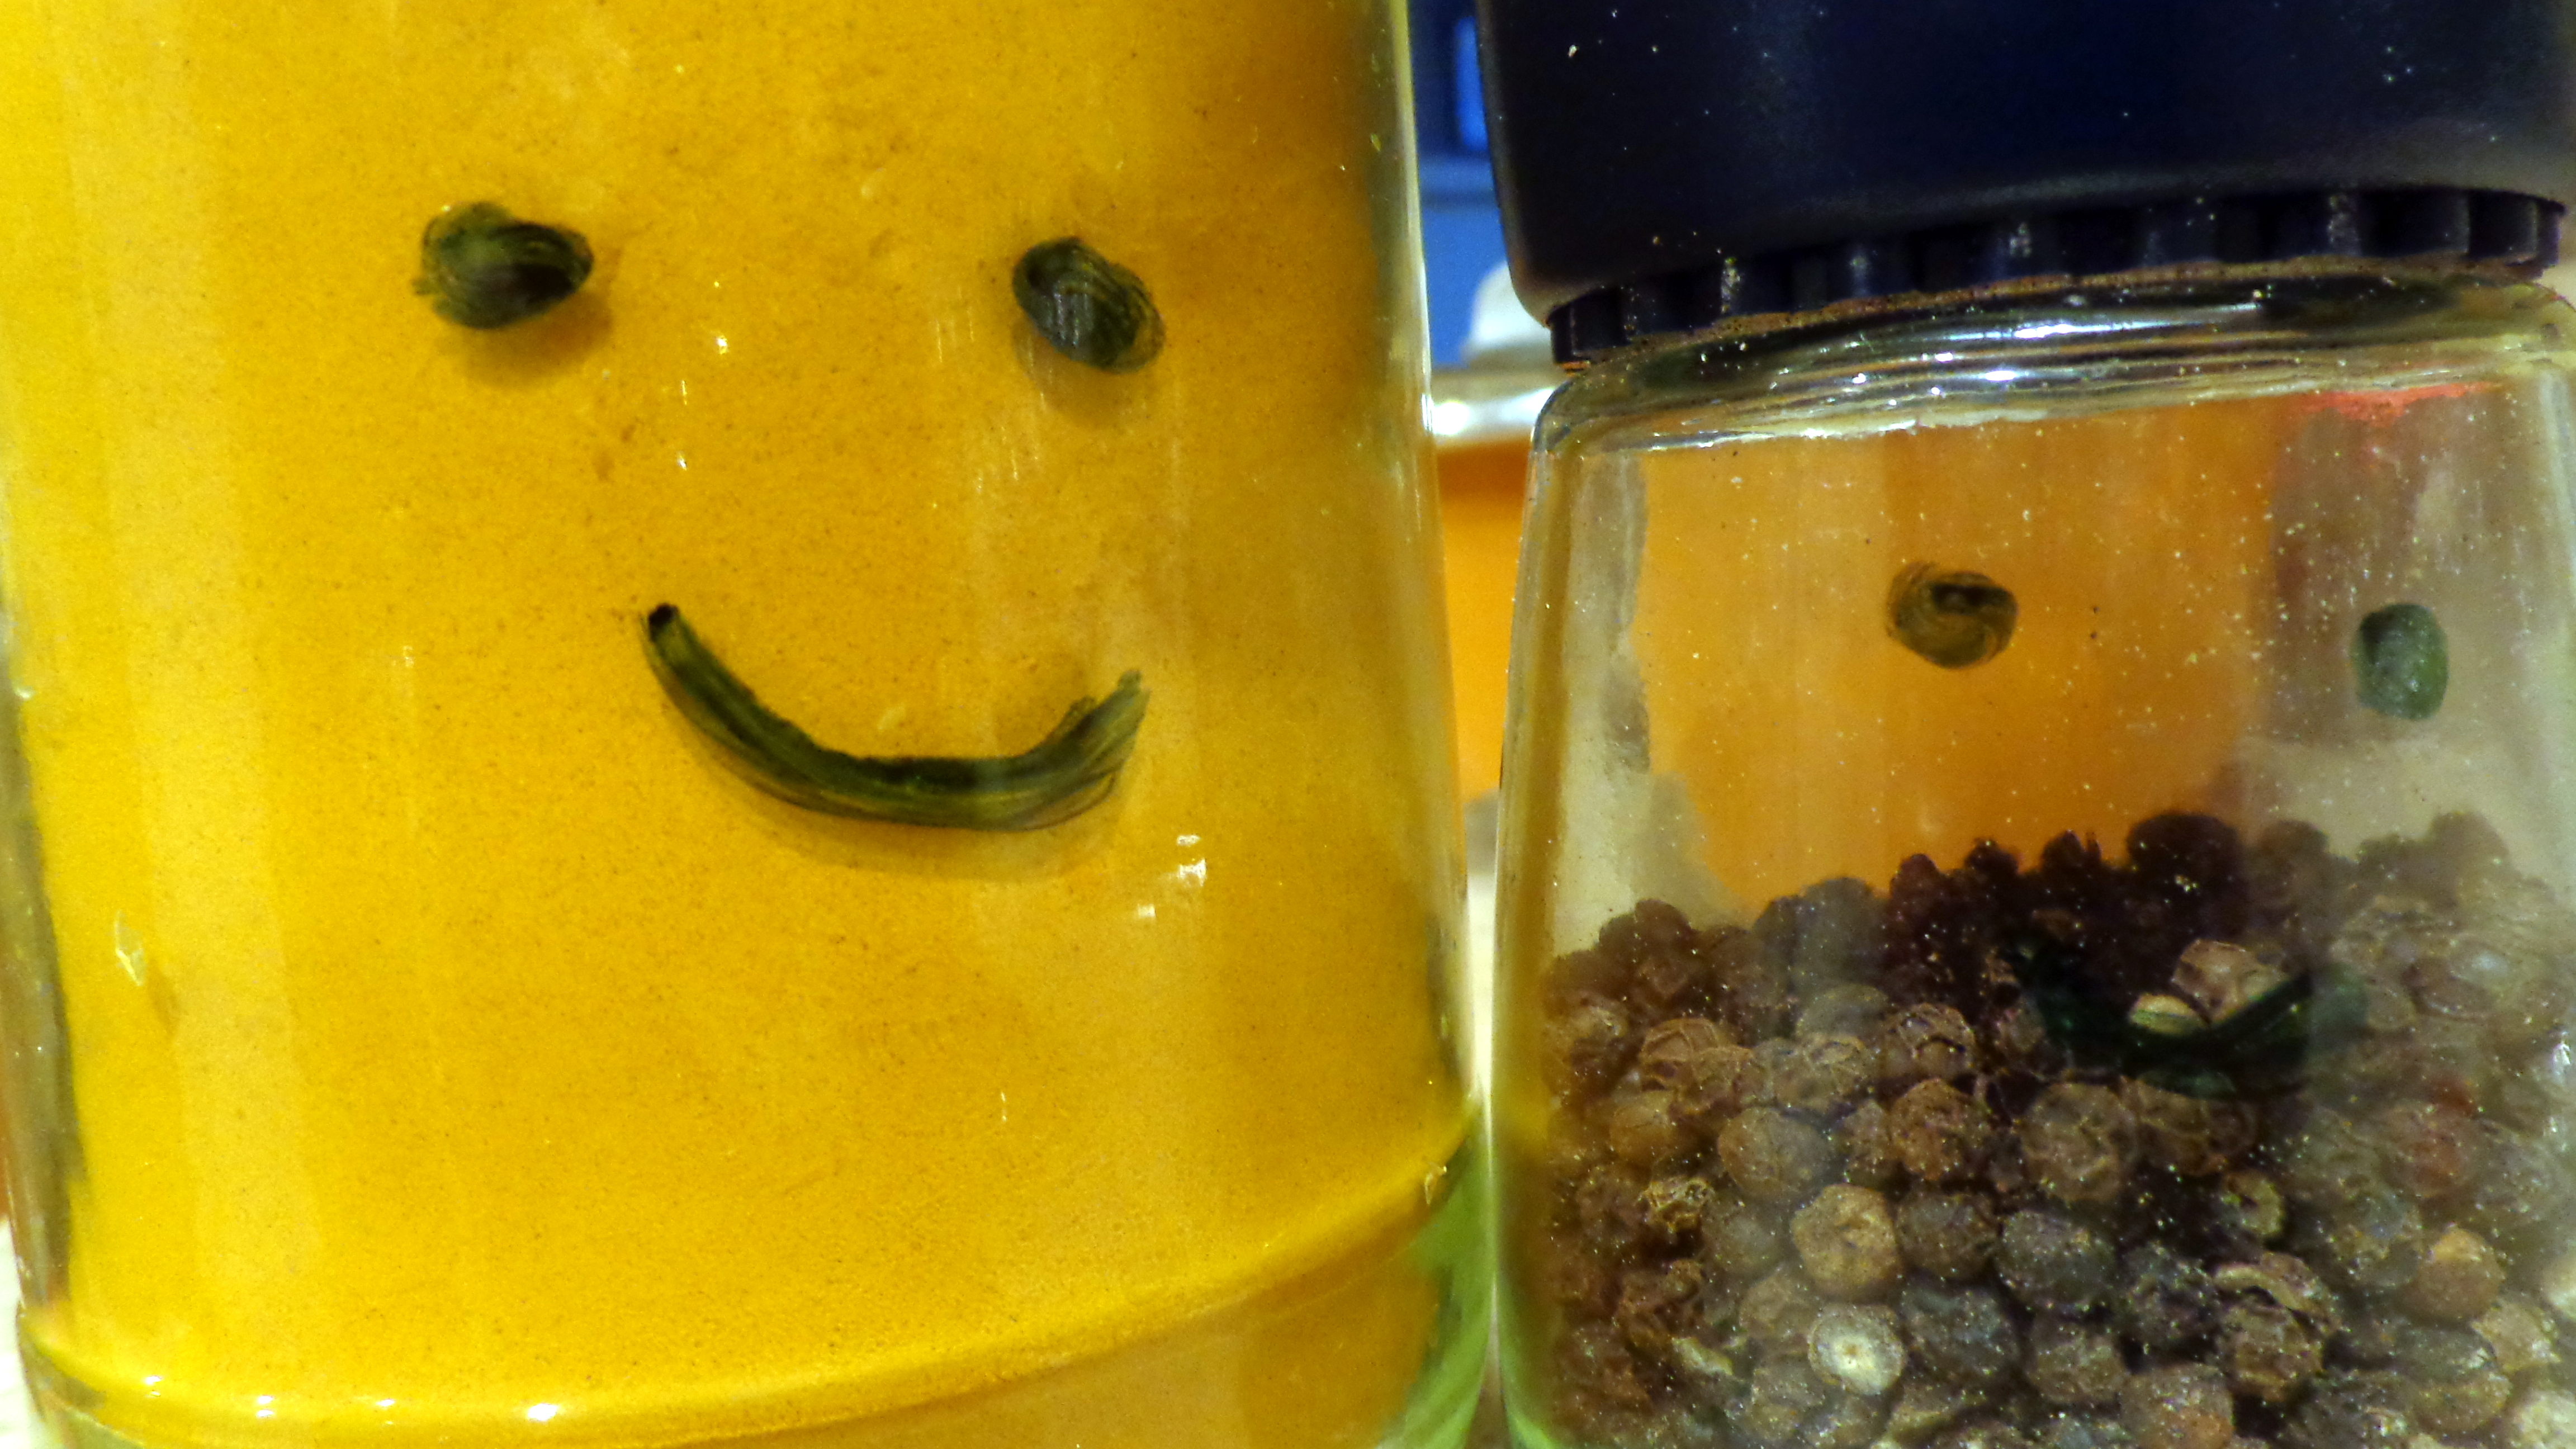 Best friends: turmeric and black peppercorn